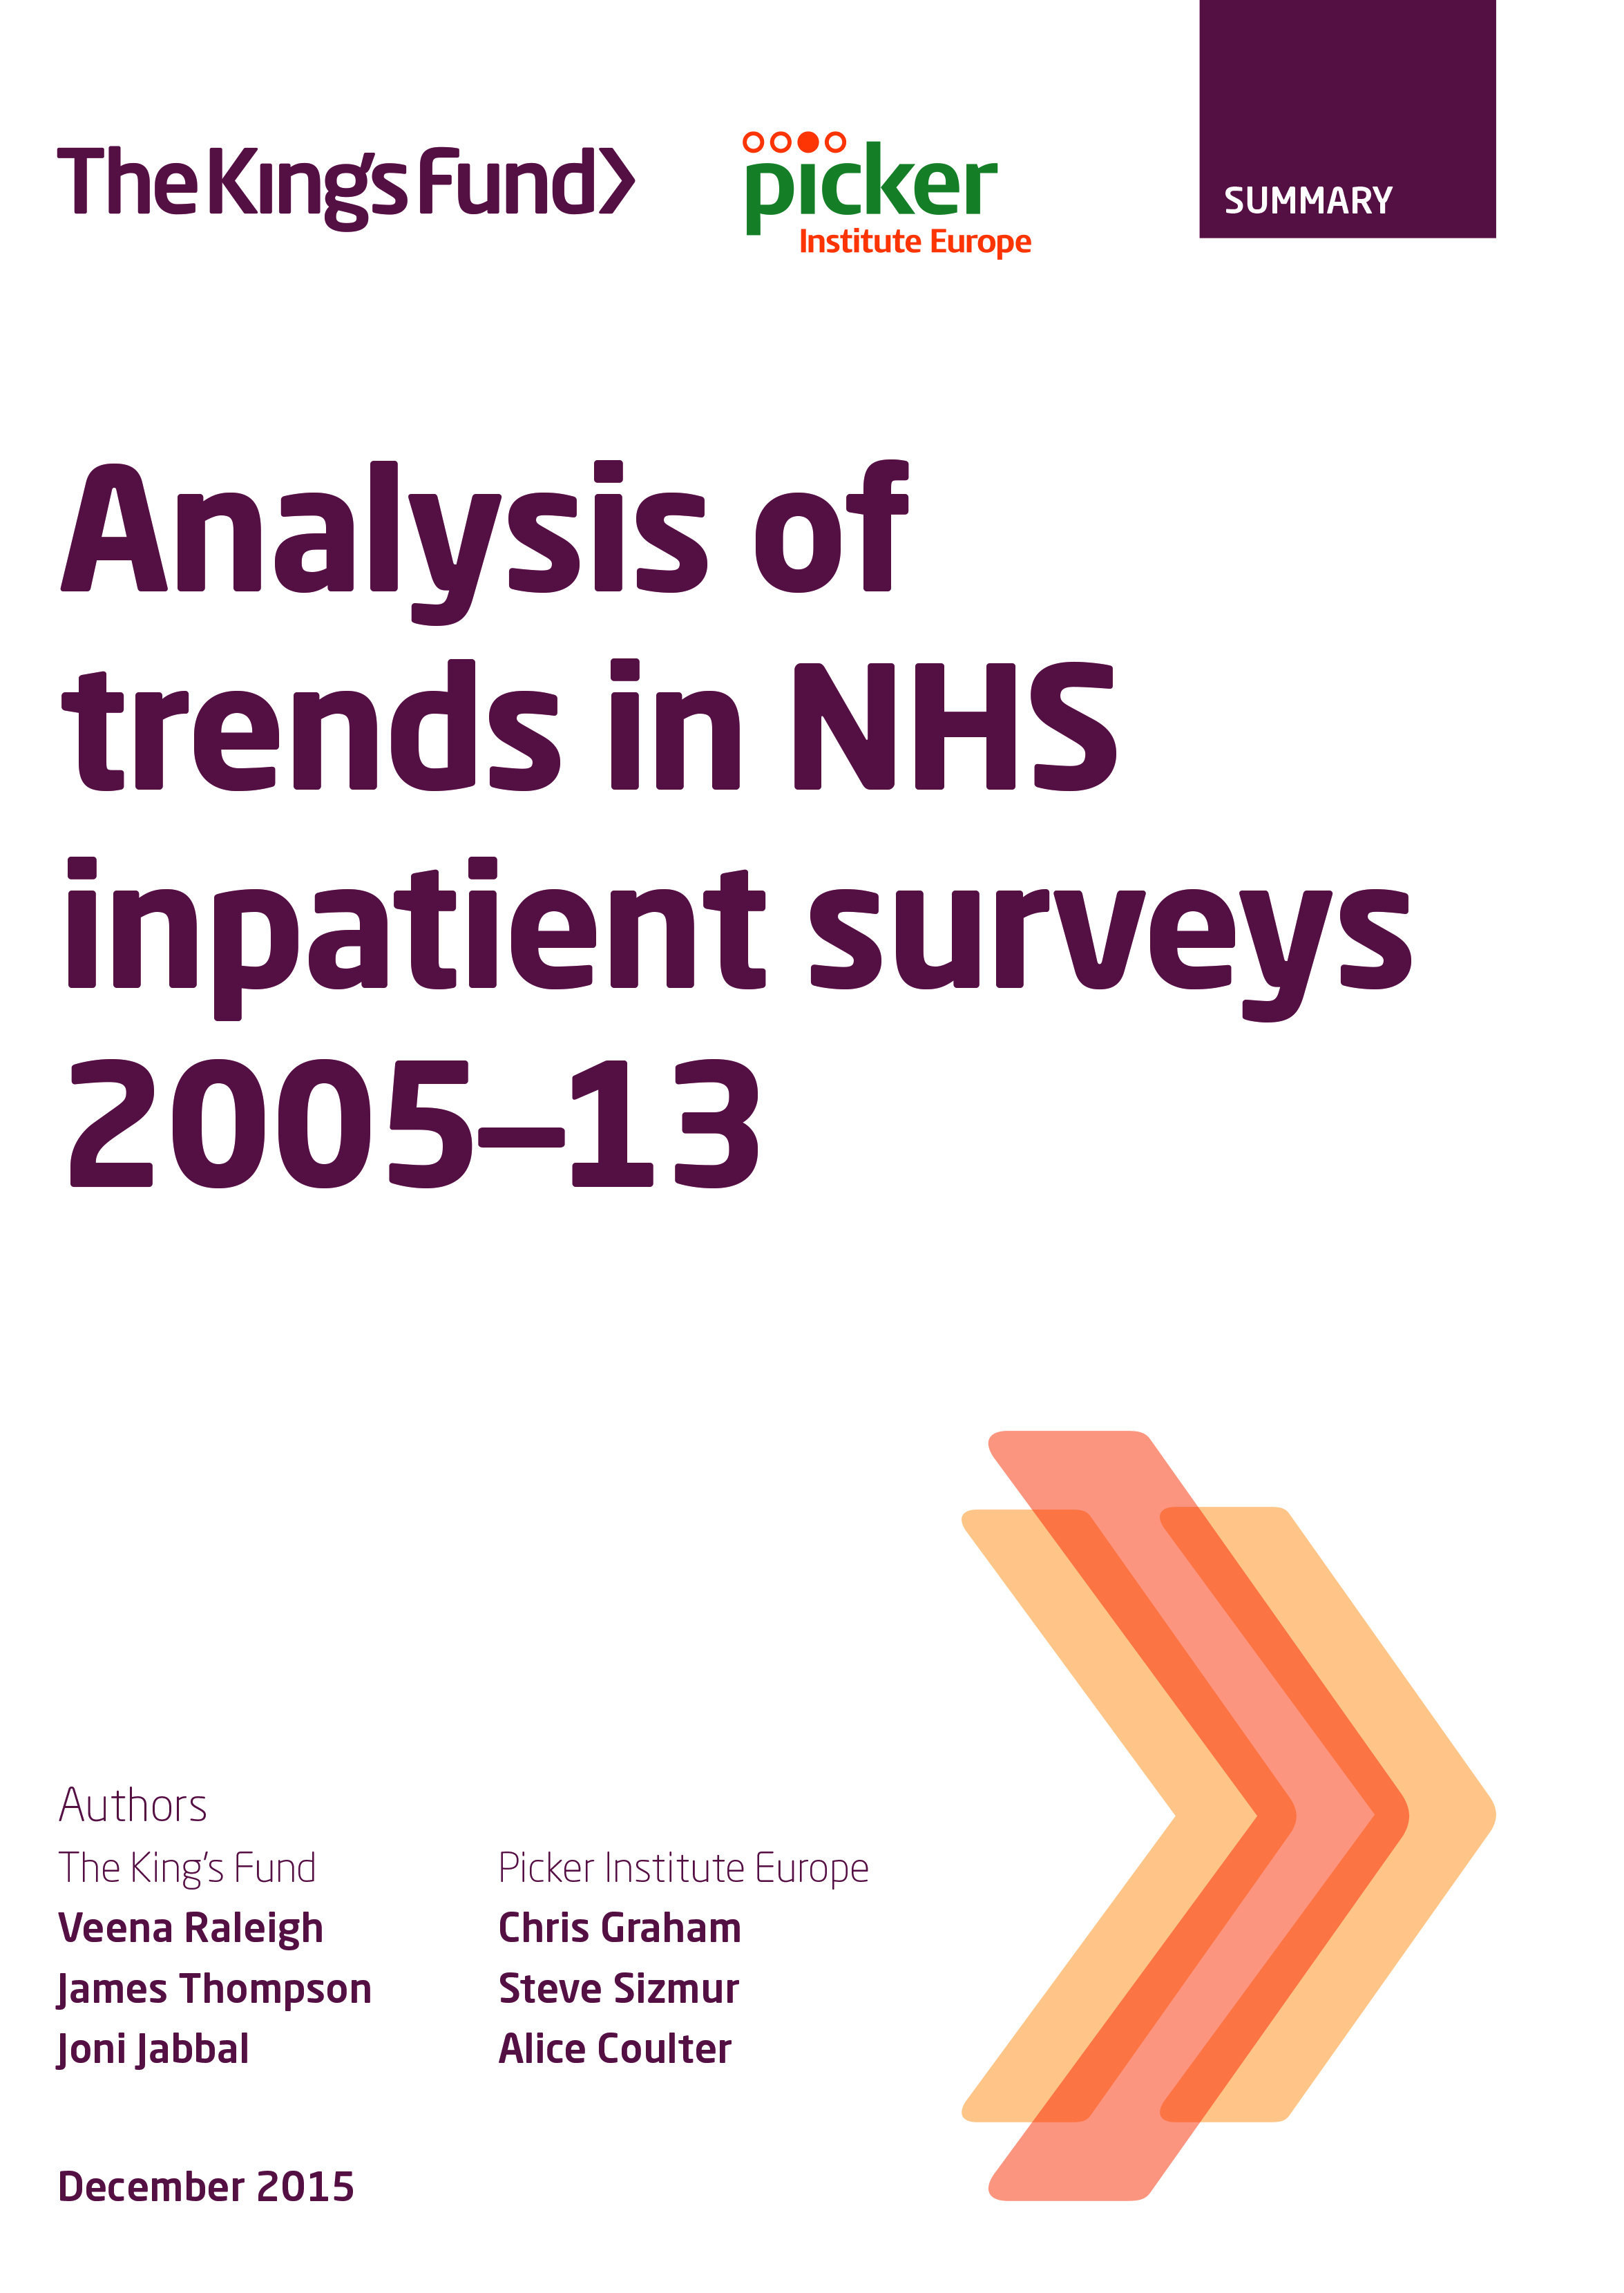 Analysis of trends in NHS inpatient surveys